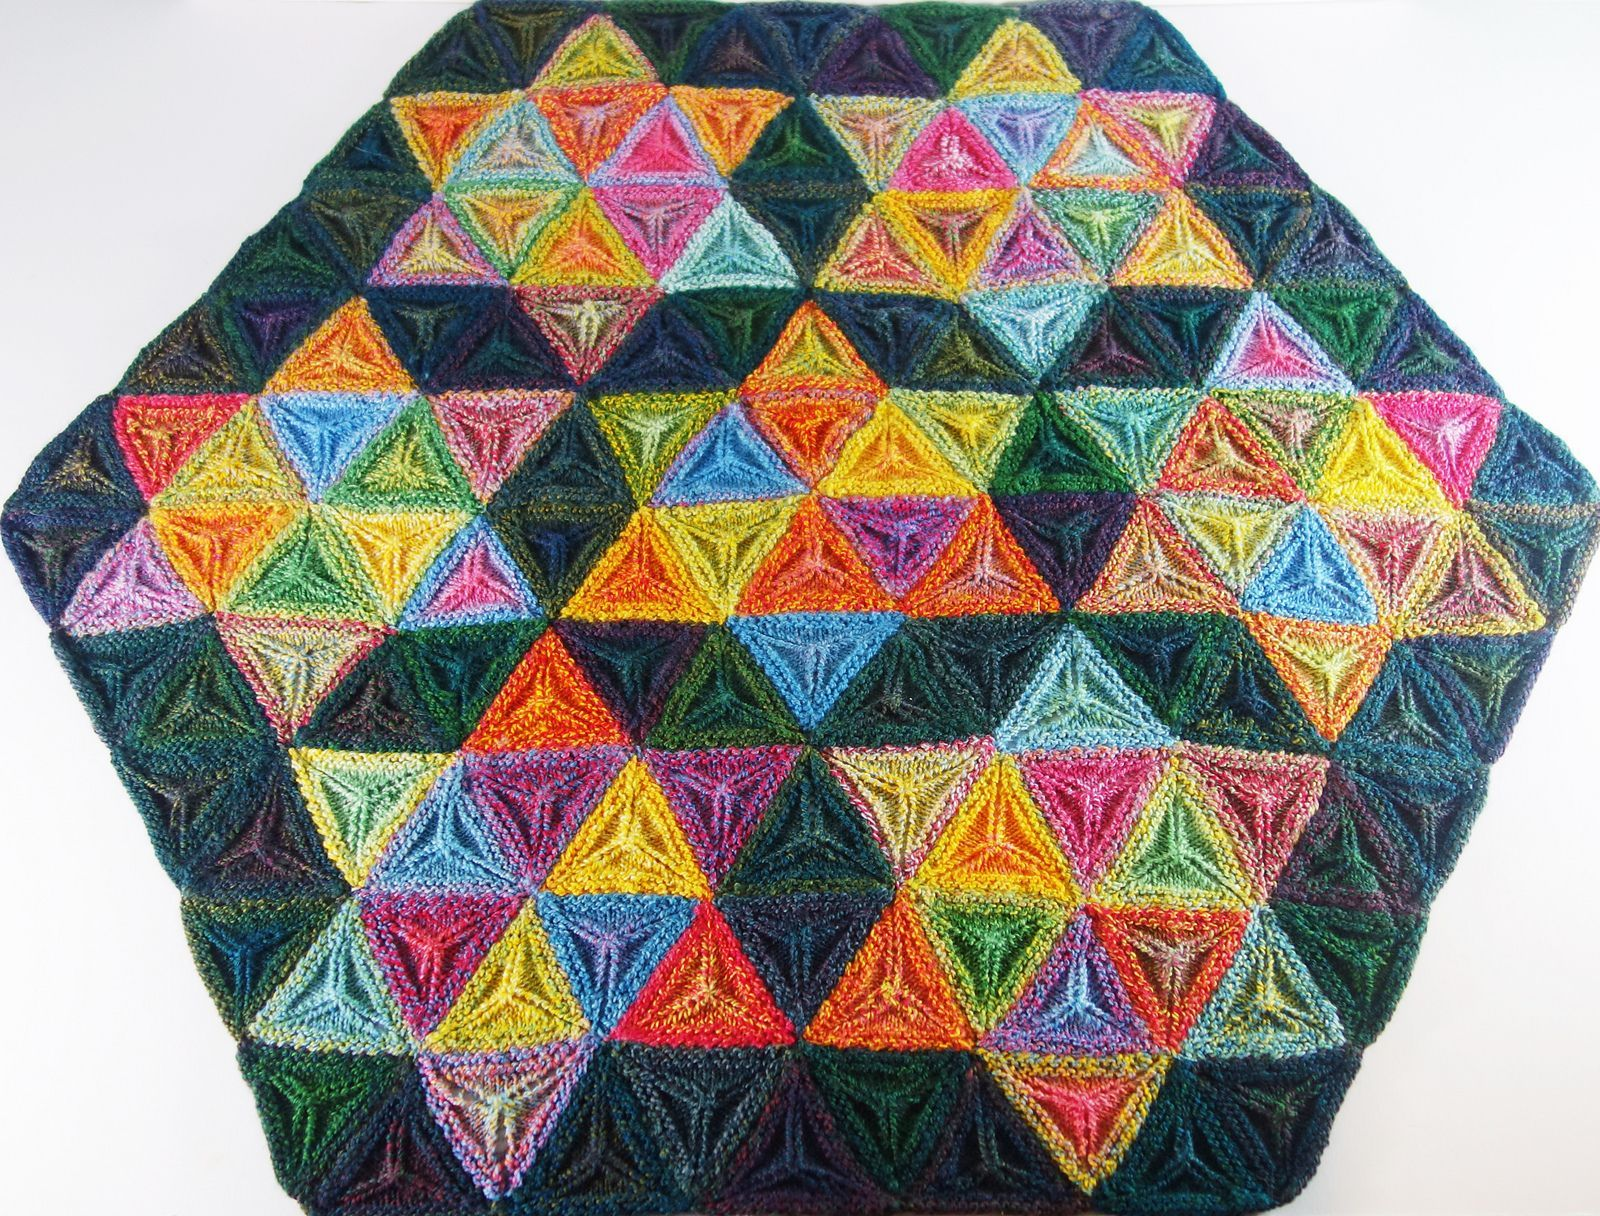 Knit A Seven Sisters Stars Afghan Gorgeous 3d Geometric